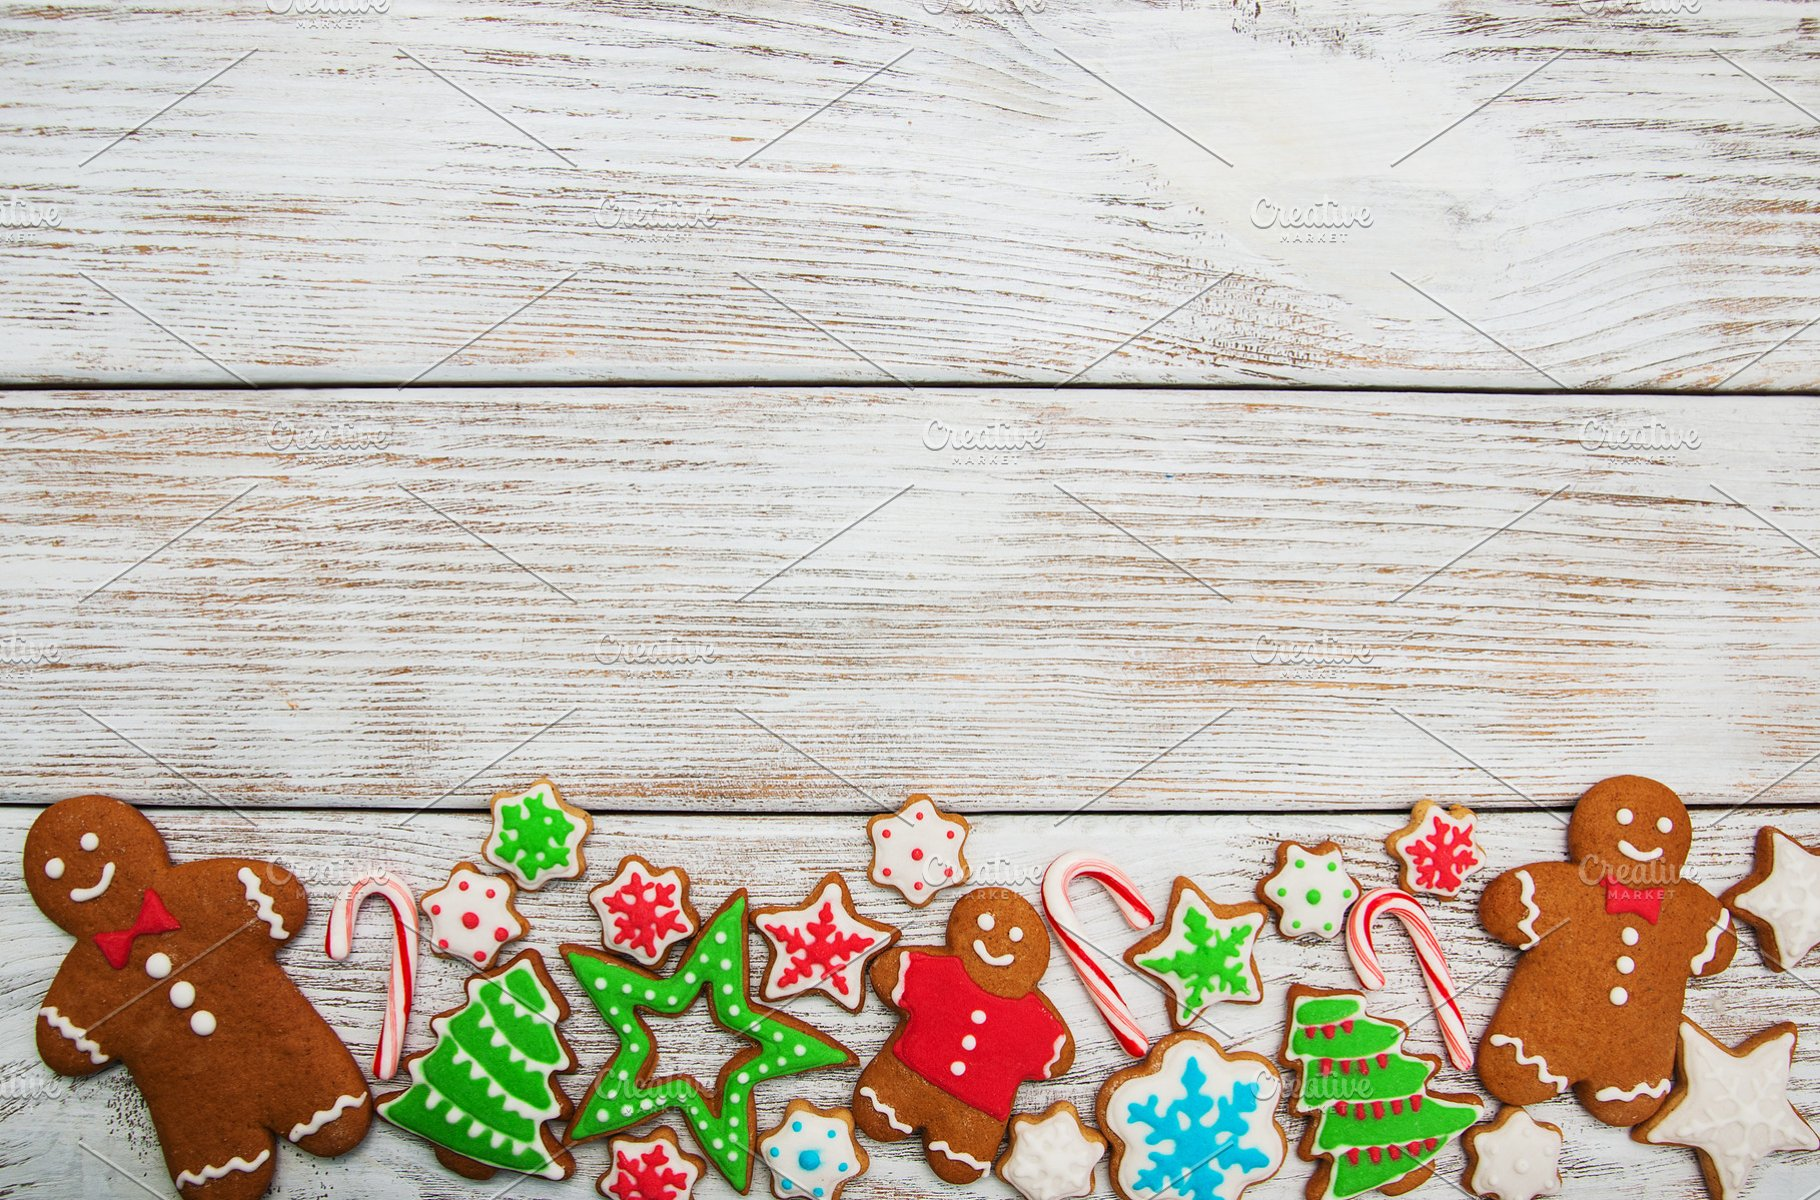 Christmas Gingerbread House Background.Christmas Background